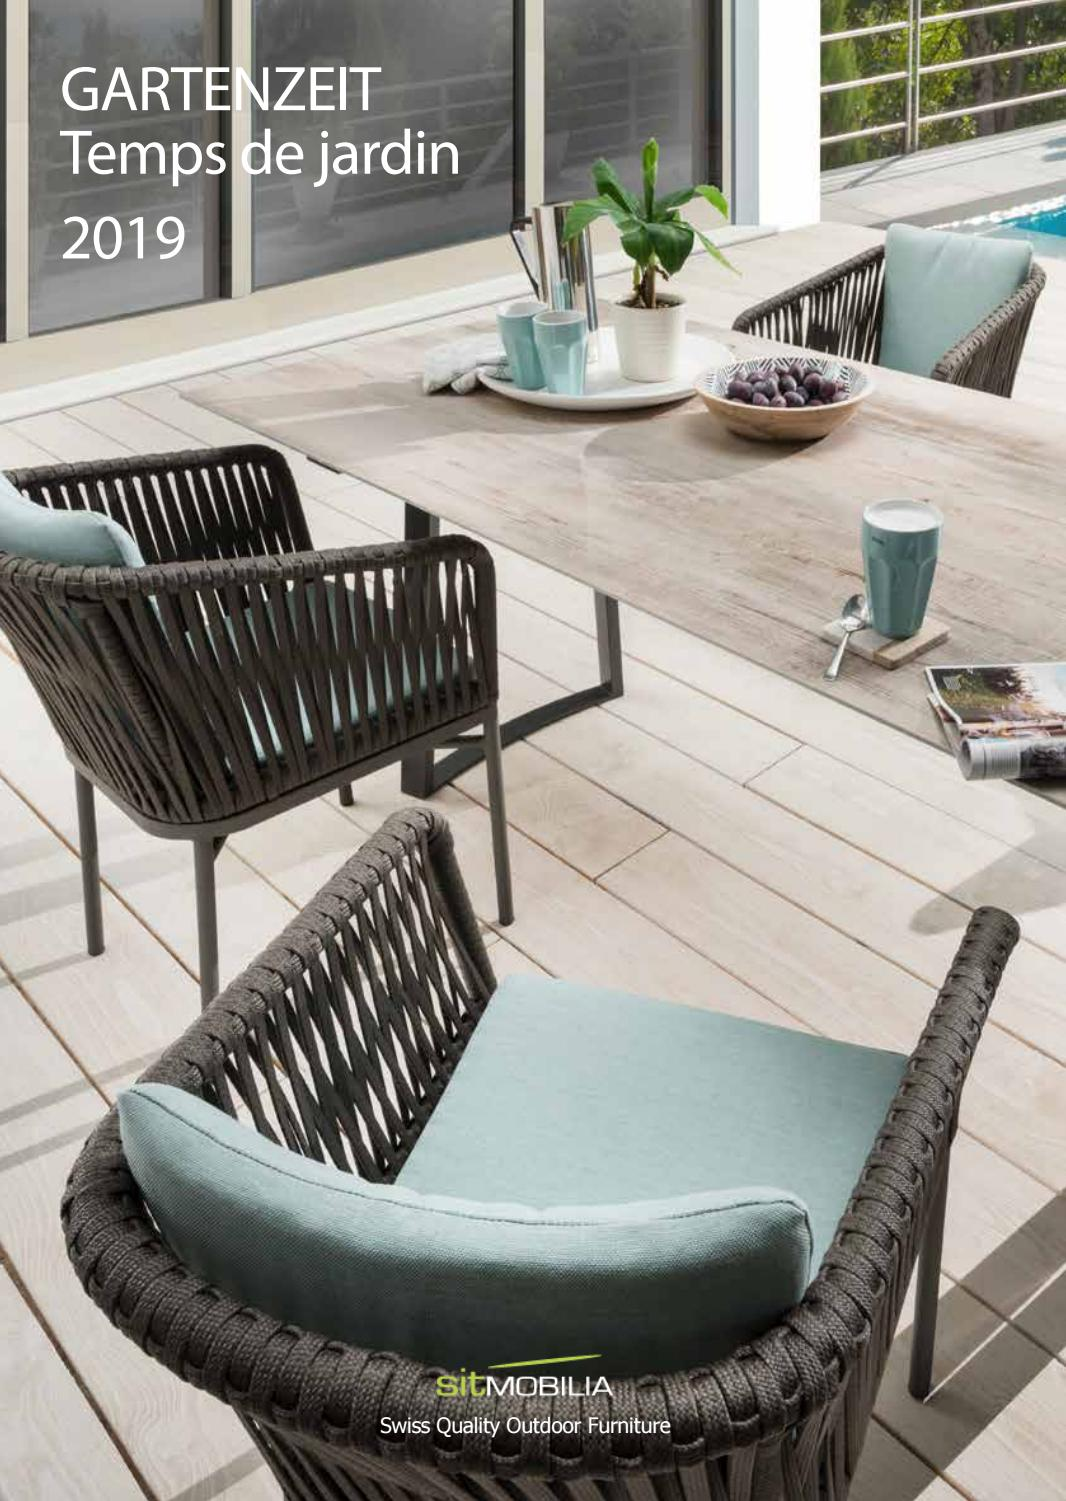 Outdoor Katalog 2019 by Joel Mauch - issuu